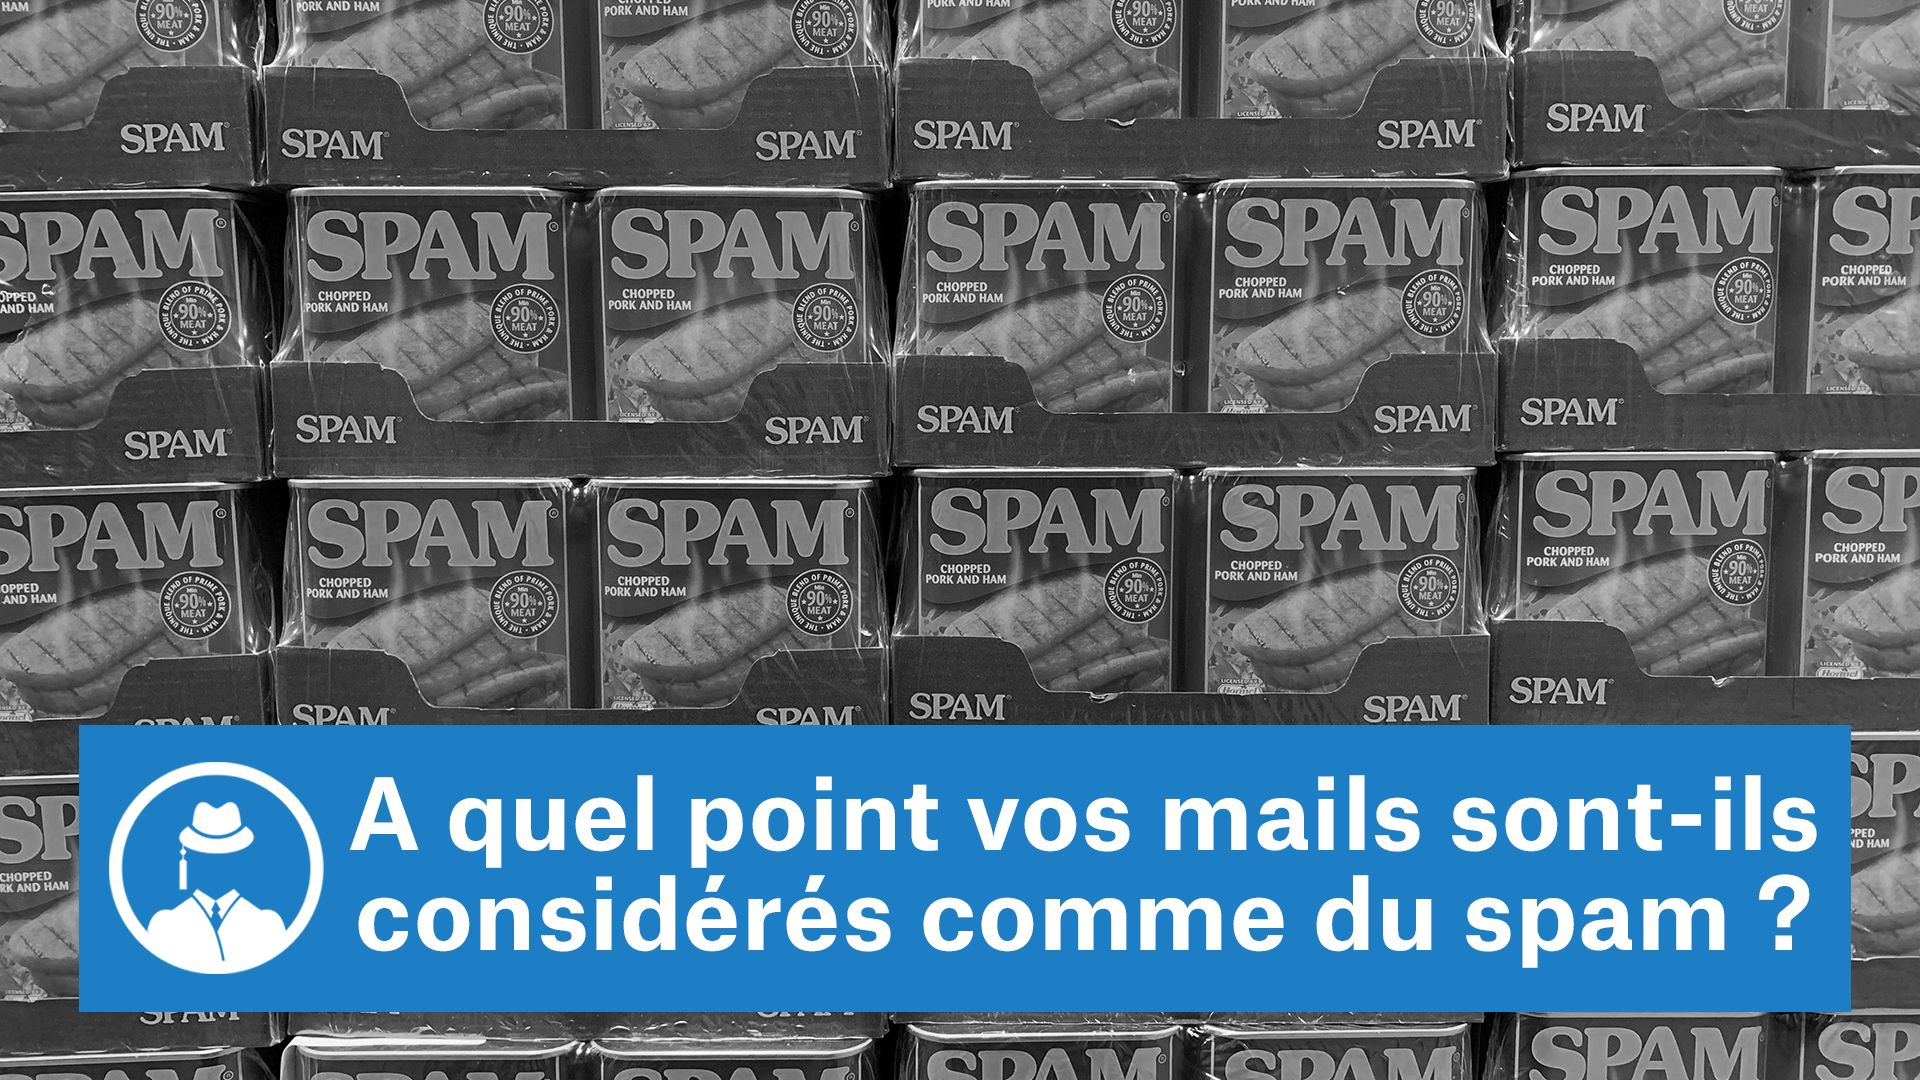 A quel point vos mails sont-ils considérés comme du spam ? #GrowthHacking #WebMarketing #FormationGrowthHacking #CentreDeFormationFrance #TunnelAARRR #AARRR #SocialMedia #CommunityManagement #SEO #MarketingDigital #SiteWeb